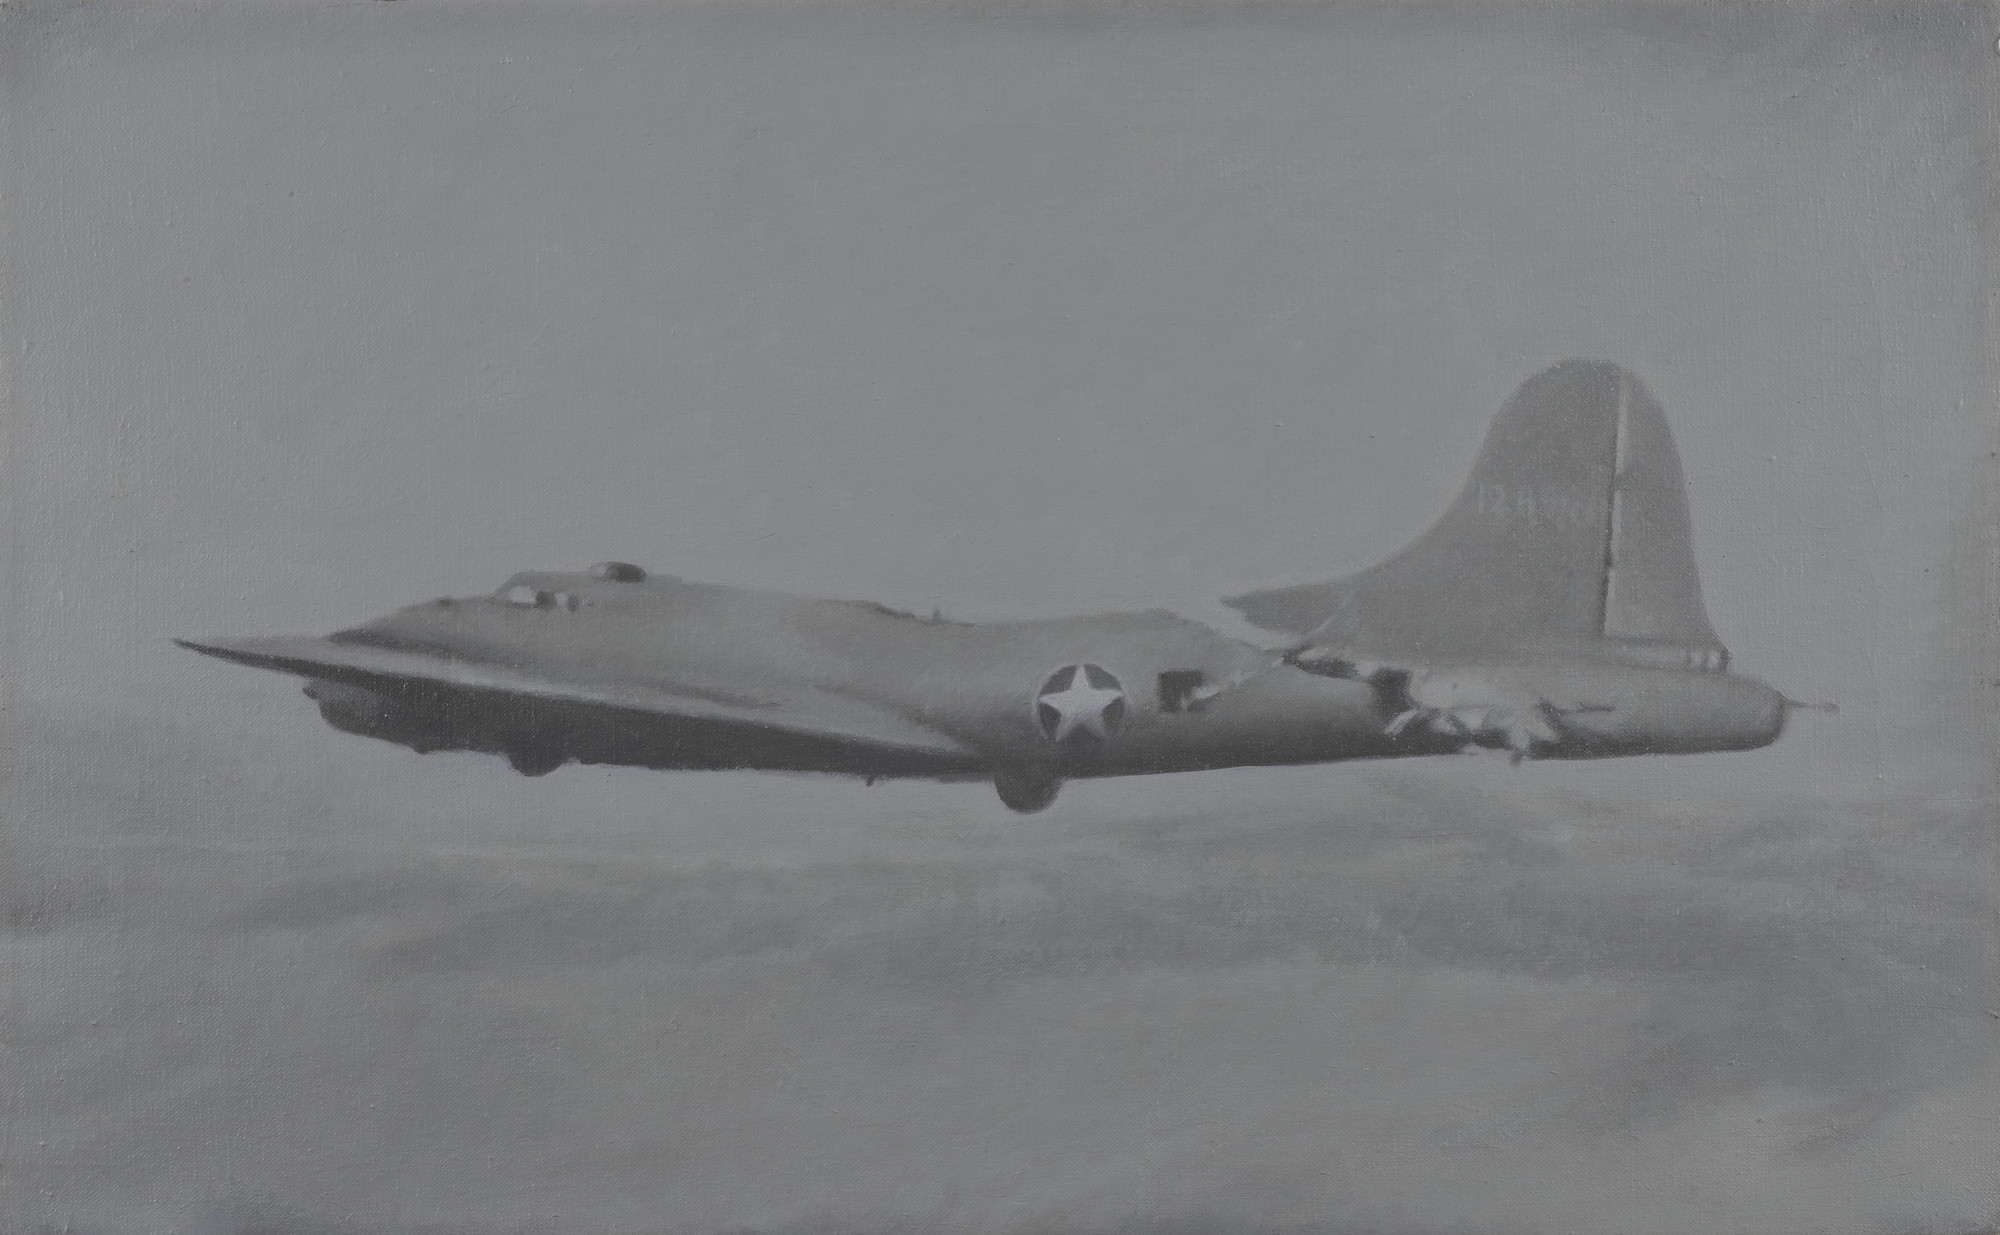 Vija Celmins. Flying Fortress. 1966